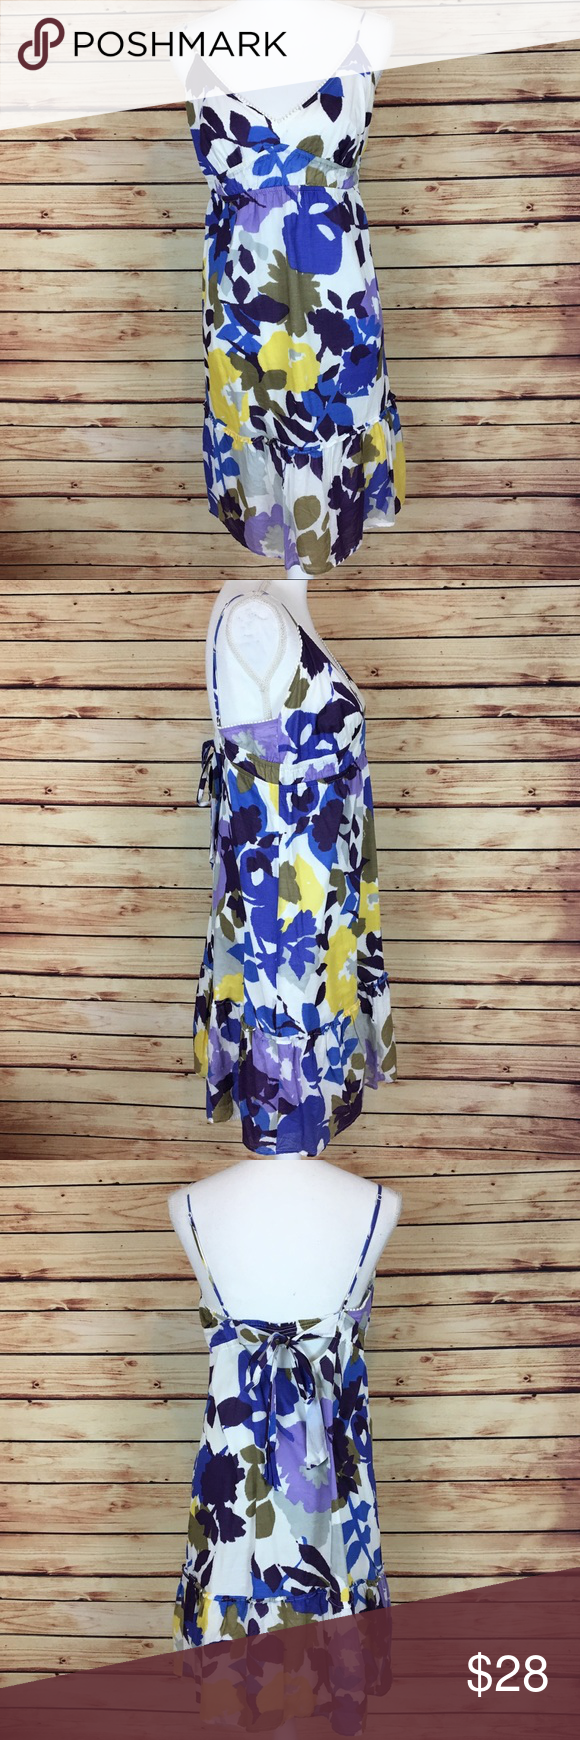 Purple yellow and white floral dress